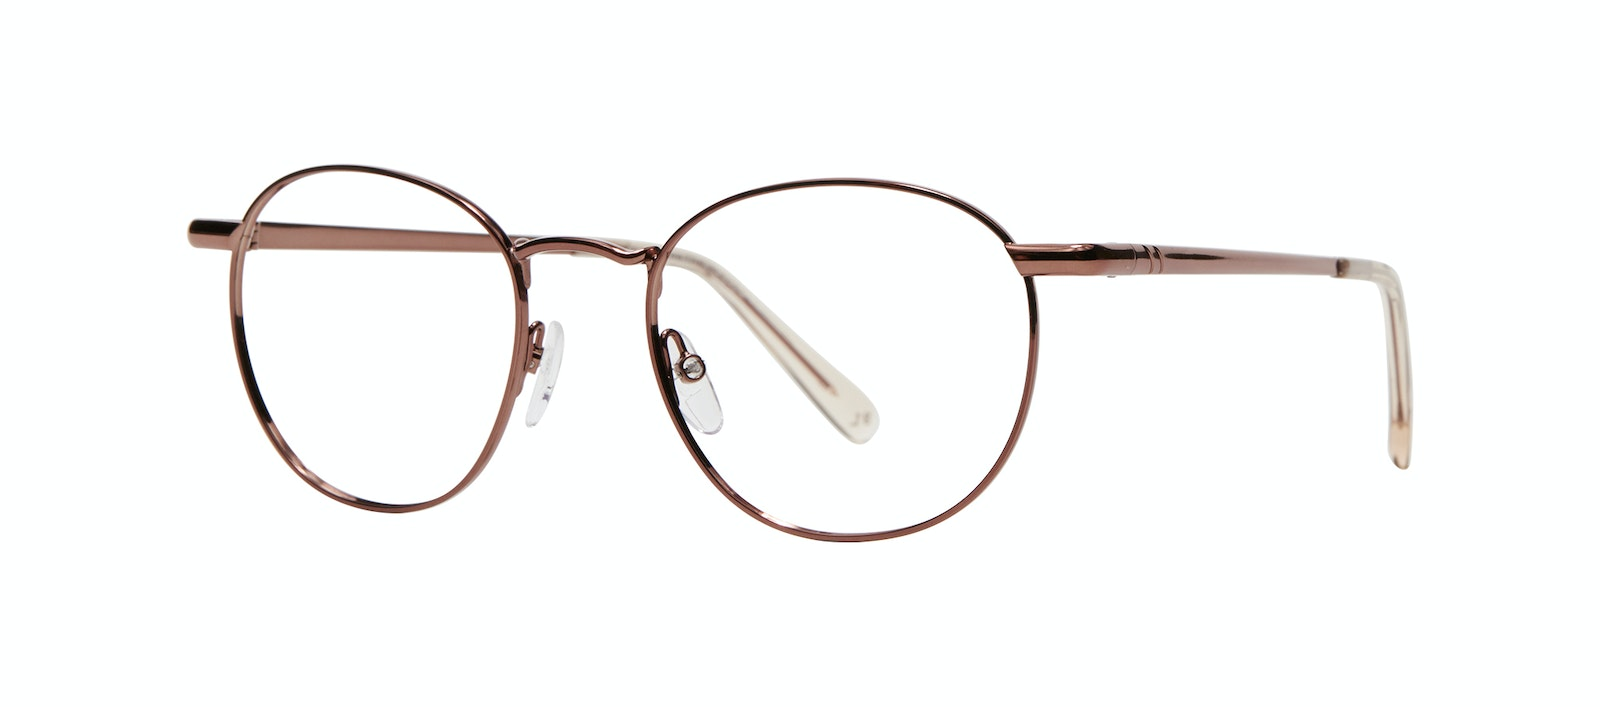 Affordable Fashion Glasses Round Eyeglasses Men Women Divine M Copper Tilt